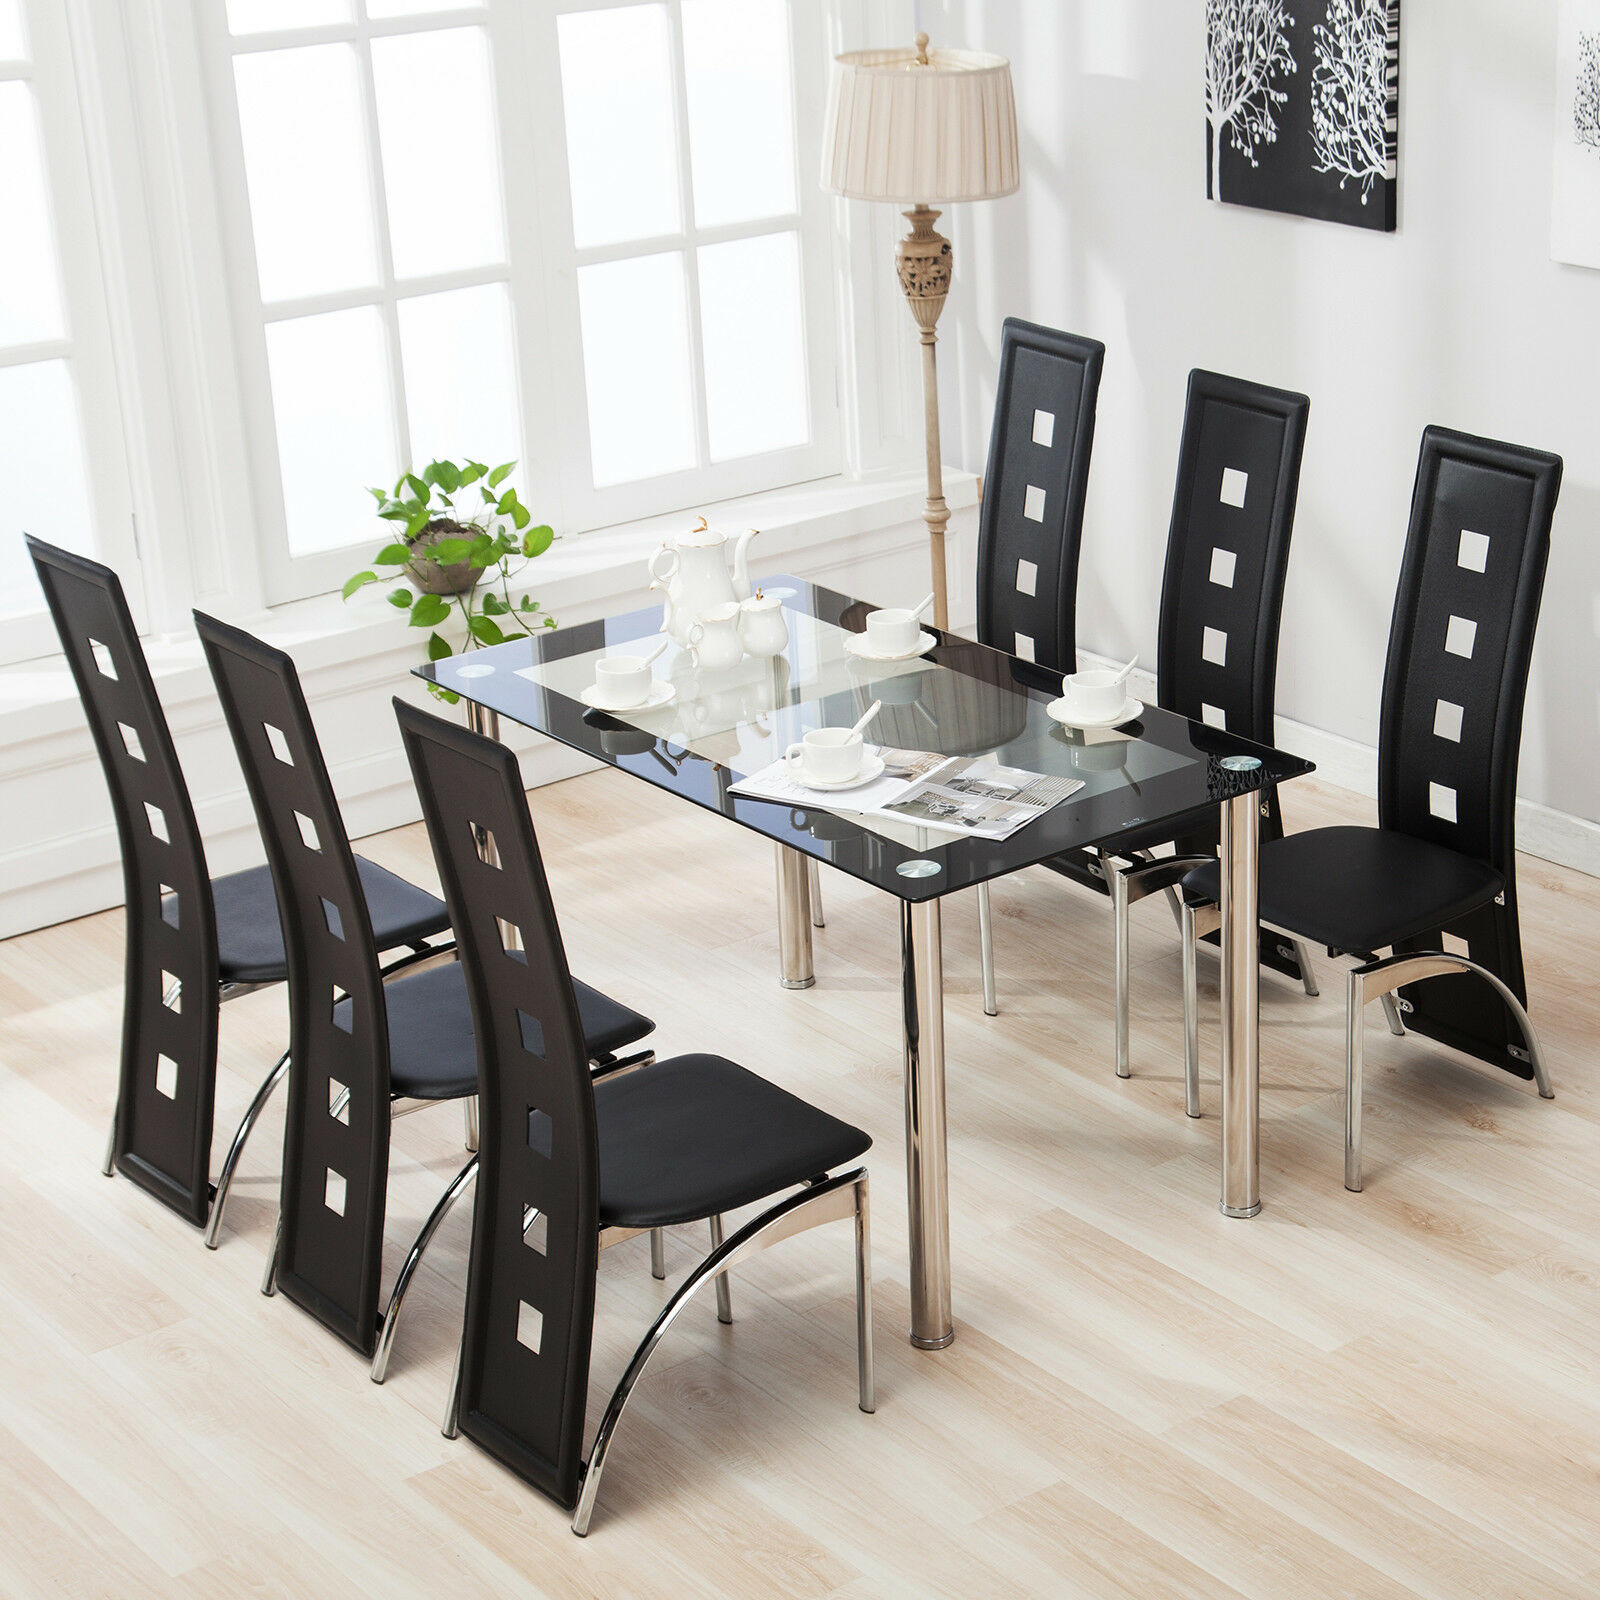 Glass Dining Table And Chairs Details About 7 Piece Dining Table Set With 6 Chairs Glass Metal Kitchen Breakfast Furniture